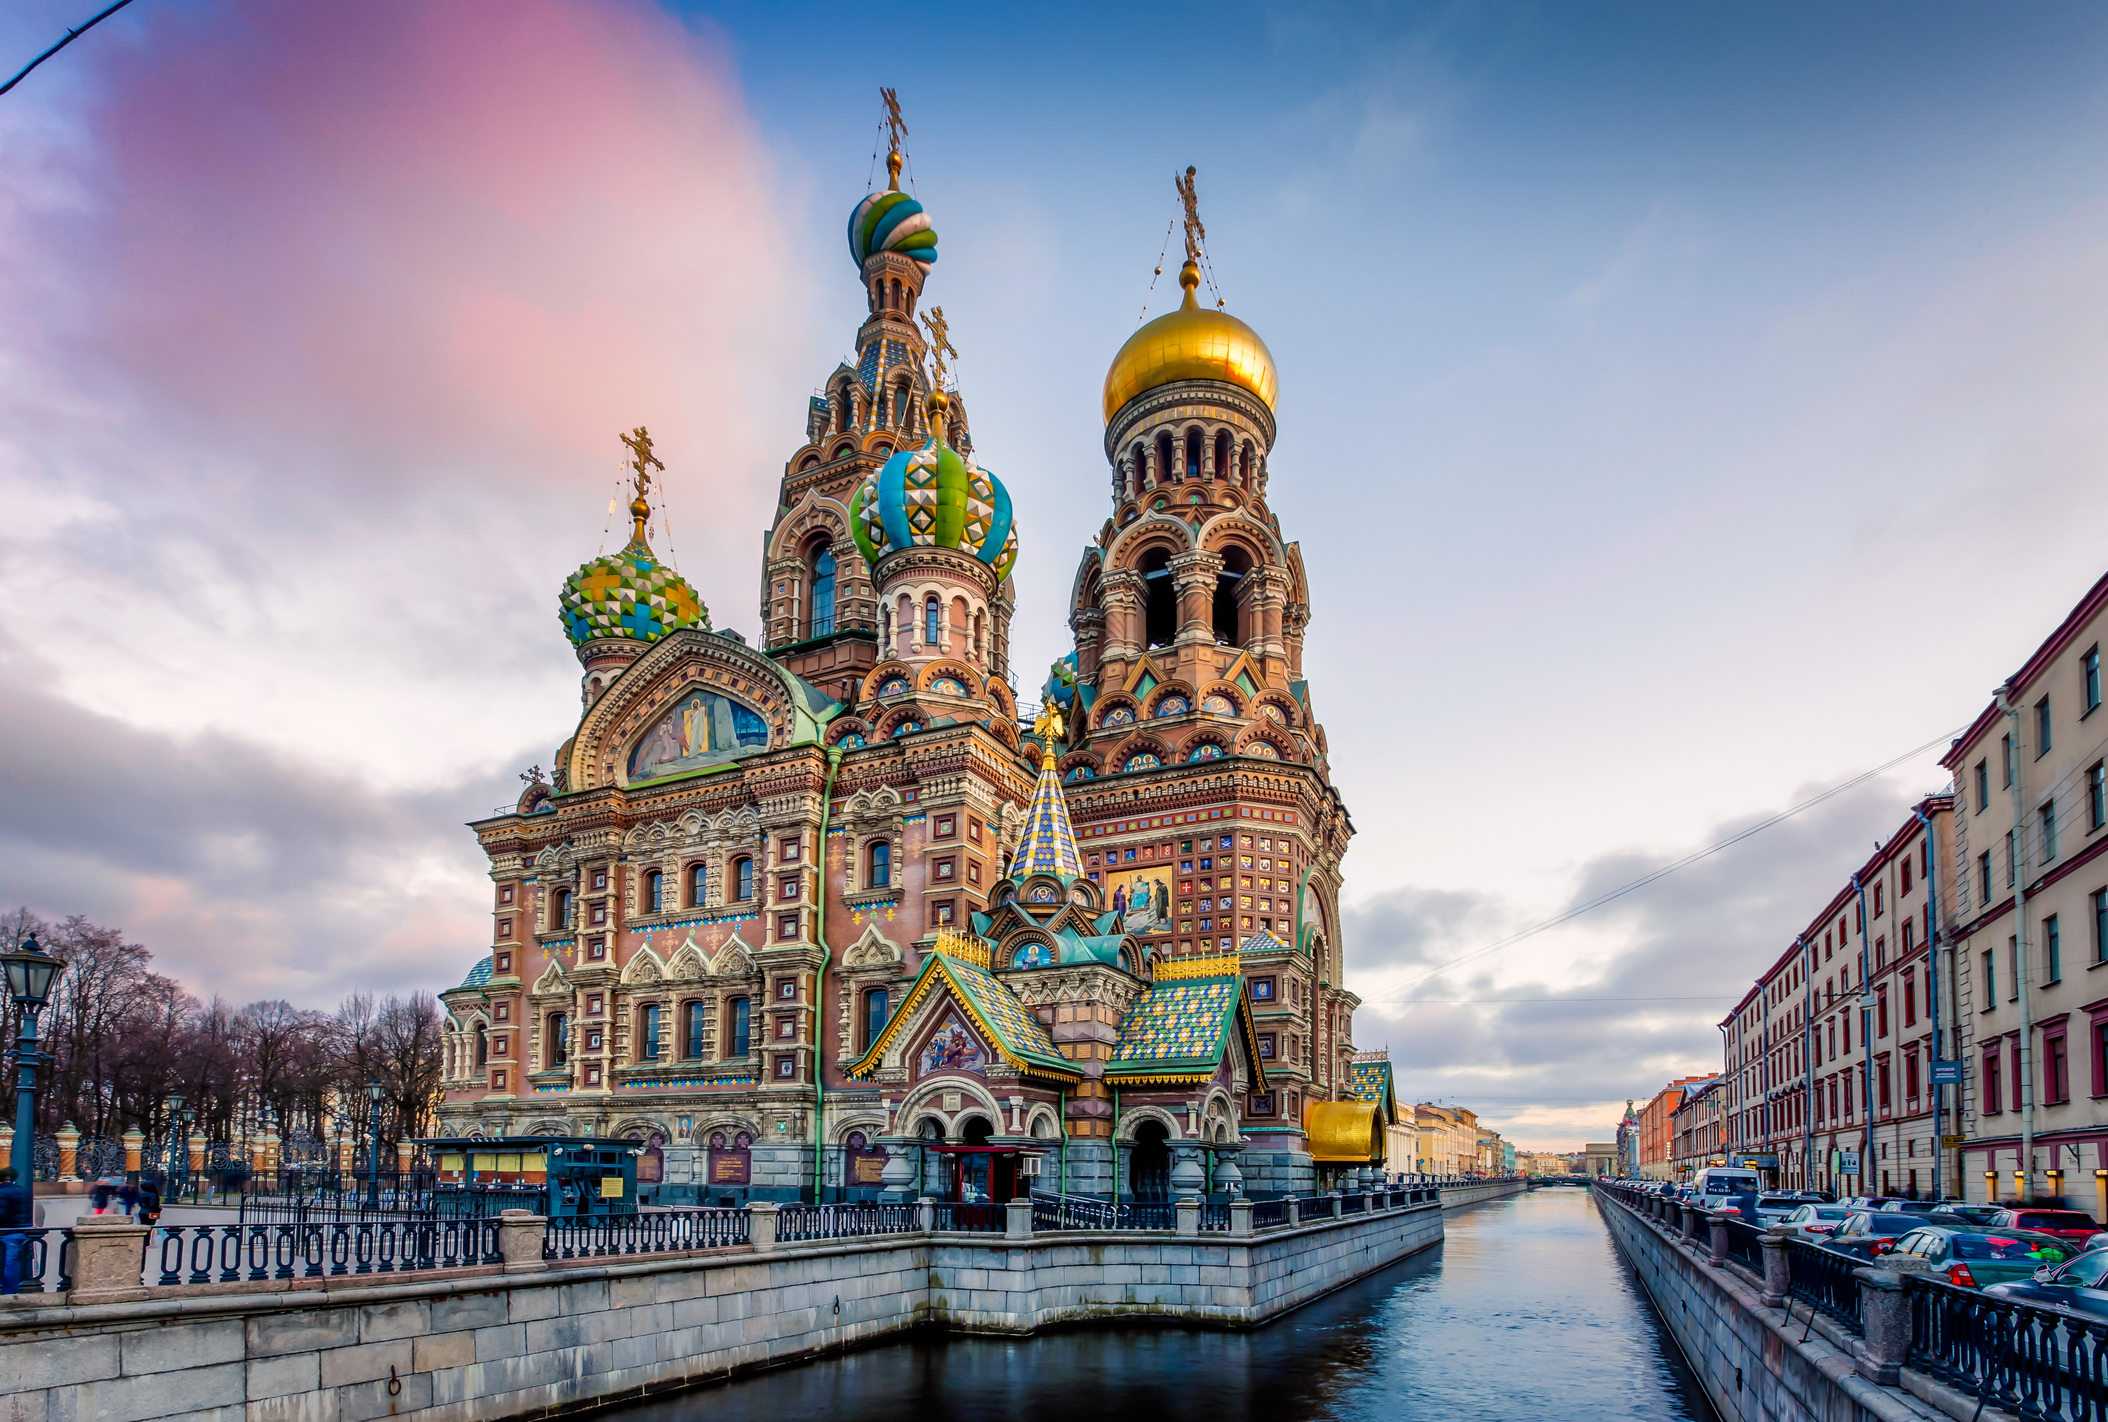 The Church of the Savior on Spilled Blood is one of the main sights of St. Petersburg, Russia. Other names include the Church on Spilled Blood, the Temple of the Savior on Spilled Blood, and the Cathedral of the Resurrection of Christ. This Church was built on the site where Emperor Alexander II was fatally wounded in March 1881.The church was built between 1883 and 1907. The construction was funded by the imperial family.